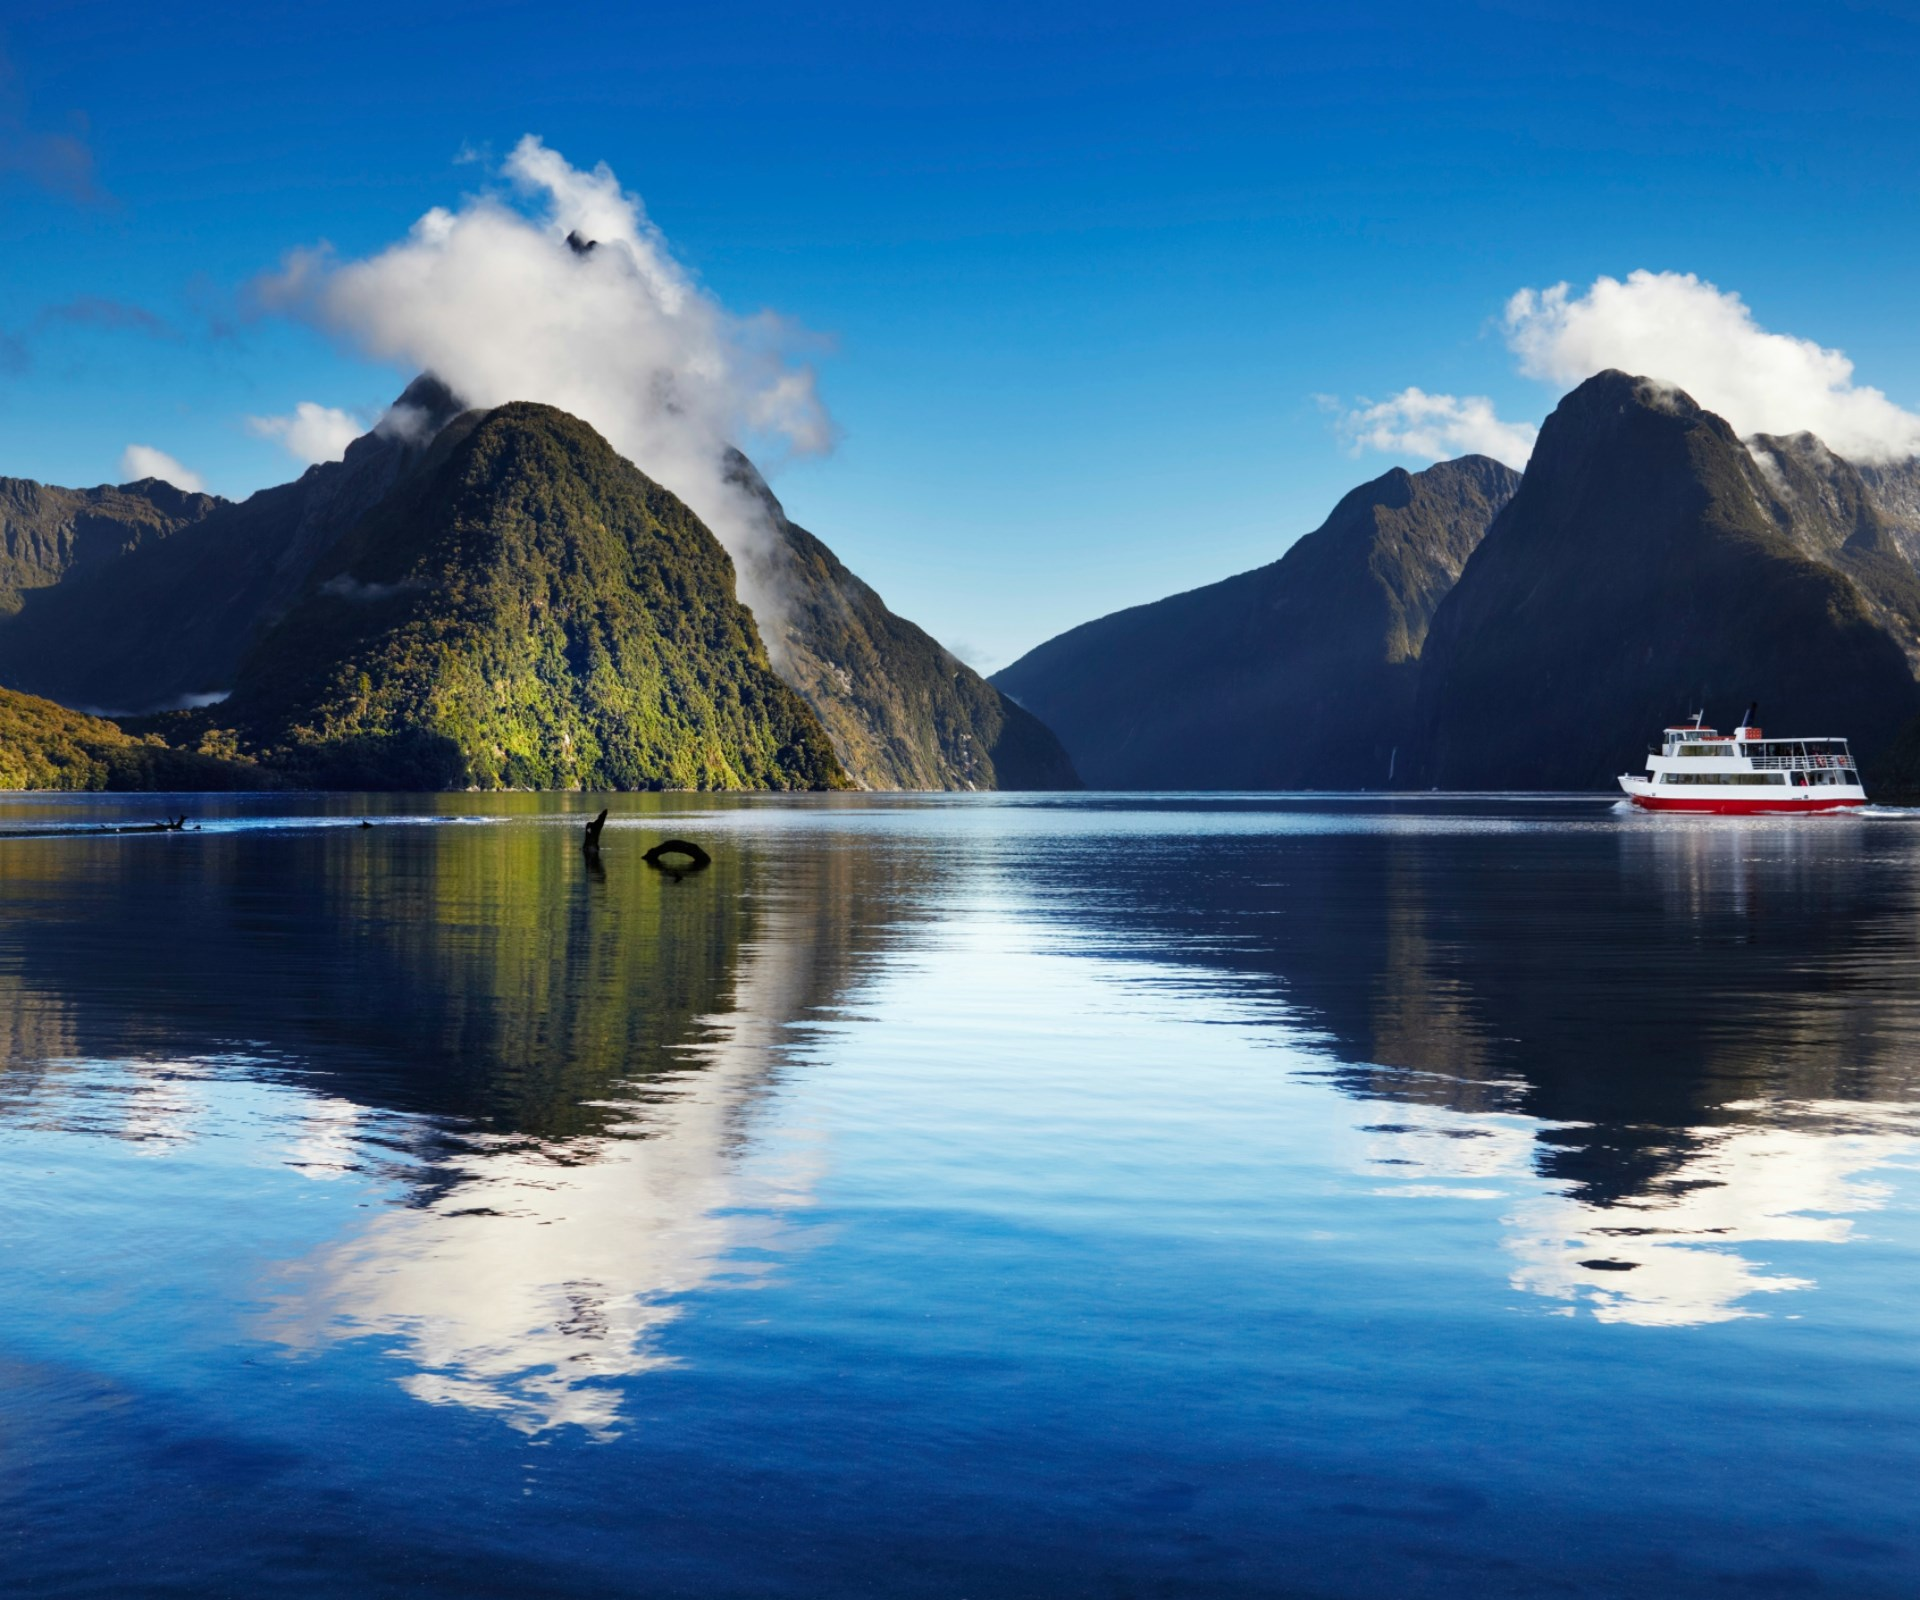 **New Zealand** Auckland and Wellington have magnificent harbours. Queen Charlotte, Doubtful and Milford Sounds have gorgeous scenery. Towns such as Dunedin and Akaroa have historic charm and great shore excursions. What's not to like about New Zealand? The adventurous can head on expedition ships to the country's wildlife-rich sub-Antarctic islands. *Recommended: [Kiwi Adventure](http://www.pocruises.com.au/findacruise/pages/CruiseProfile.aspx?CruiseCode=P544N) via [cruises.com.au](http://www.cruises.com.au/).*: [object Object]